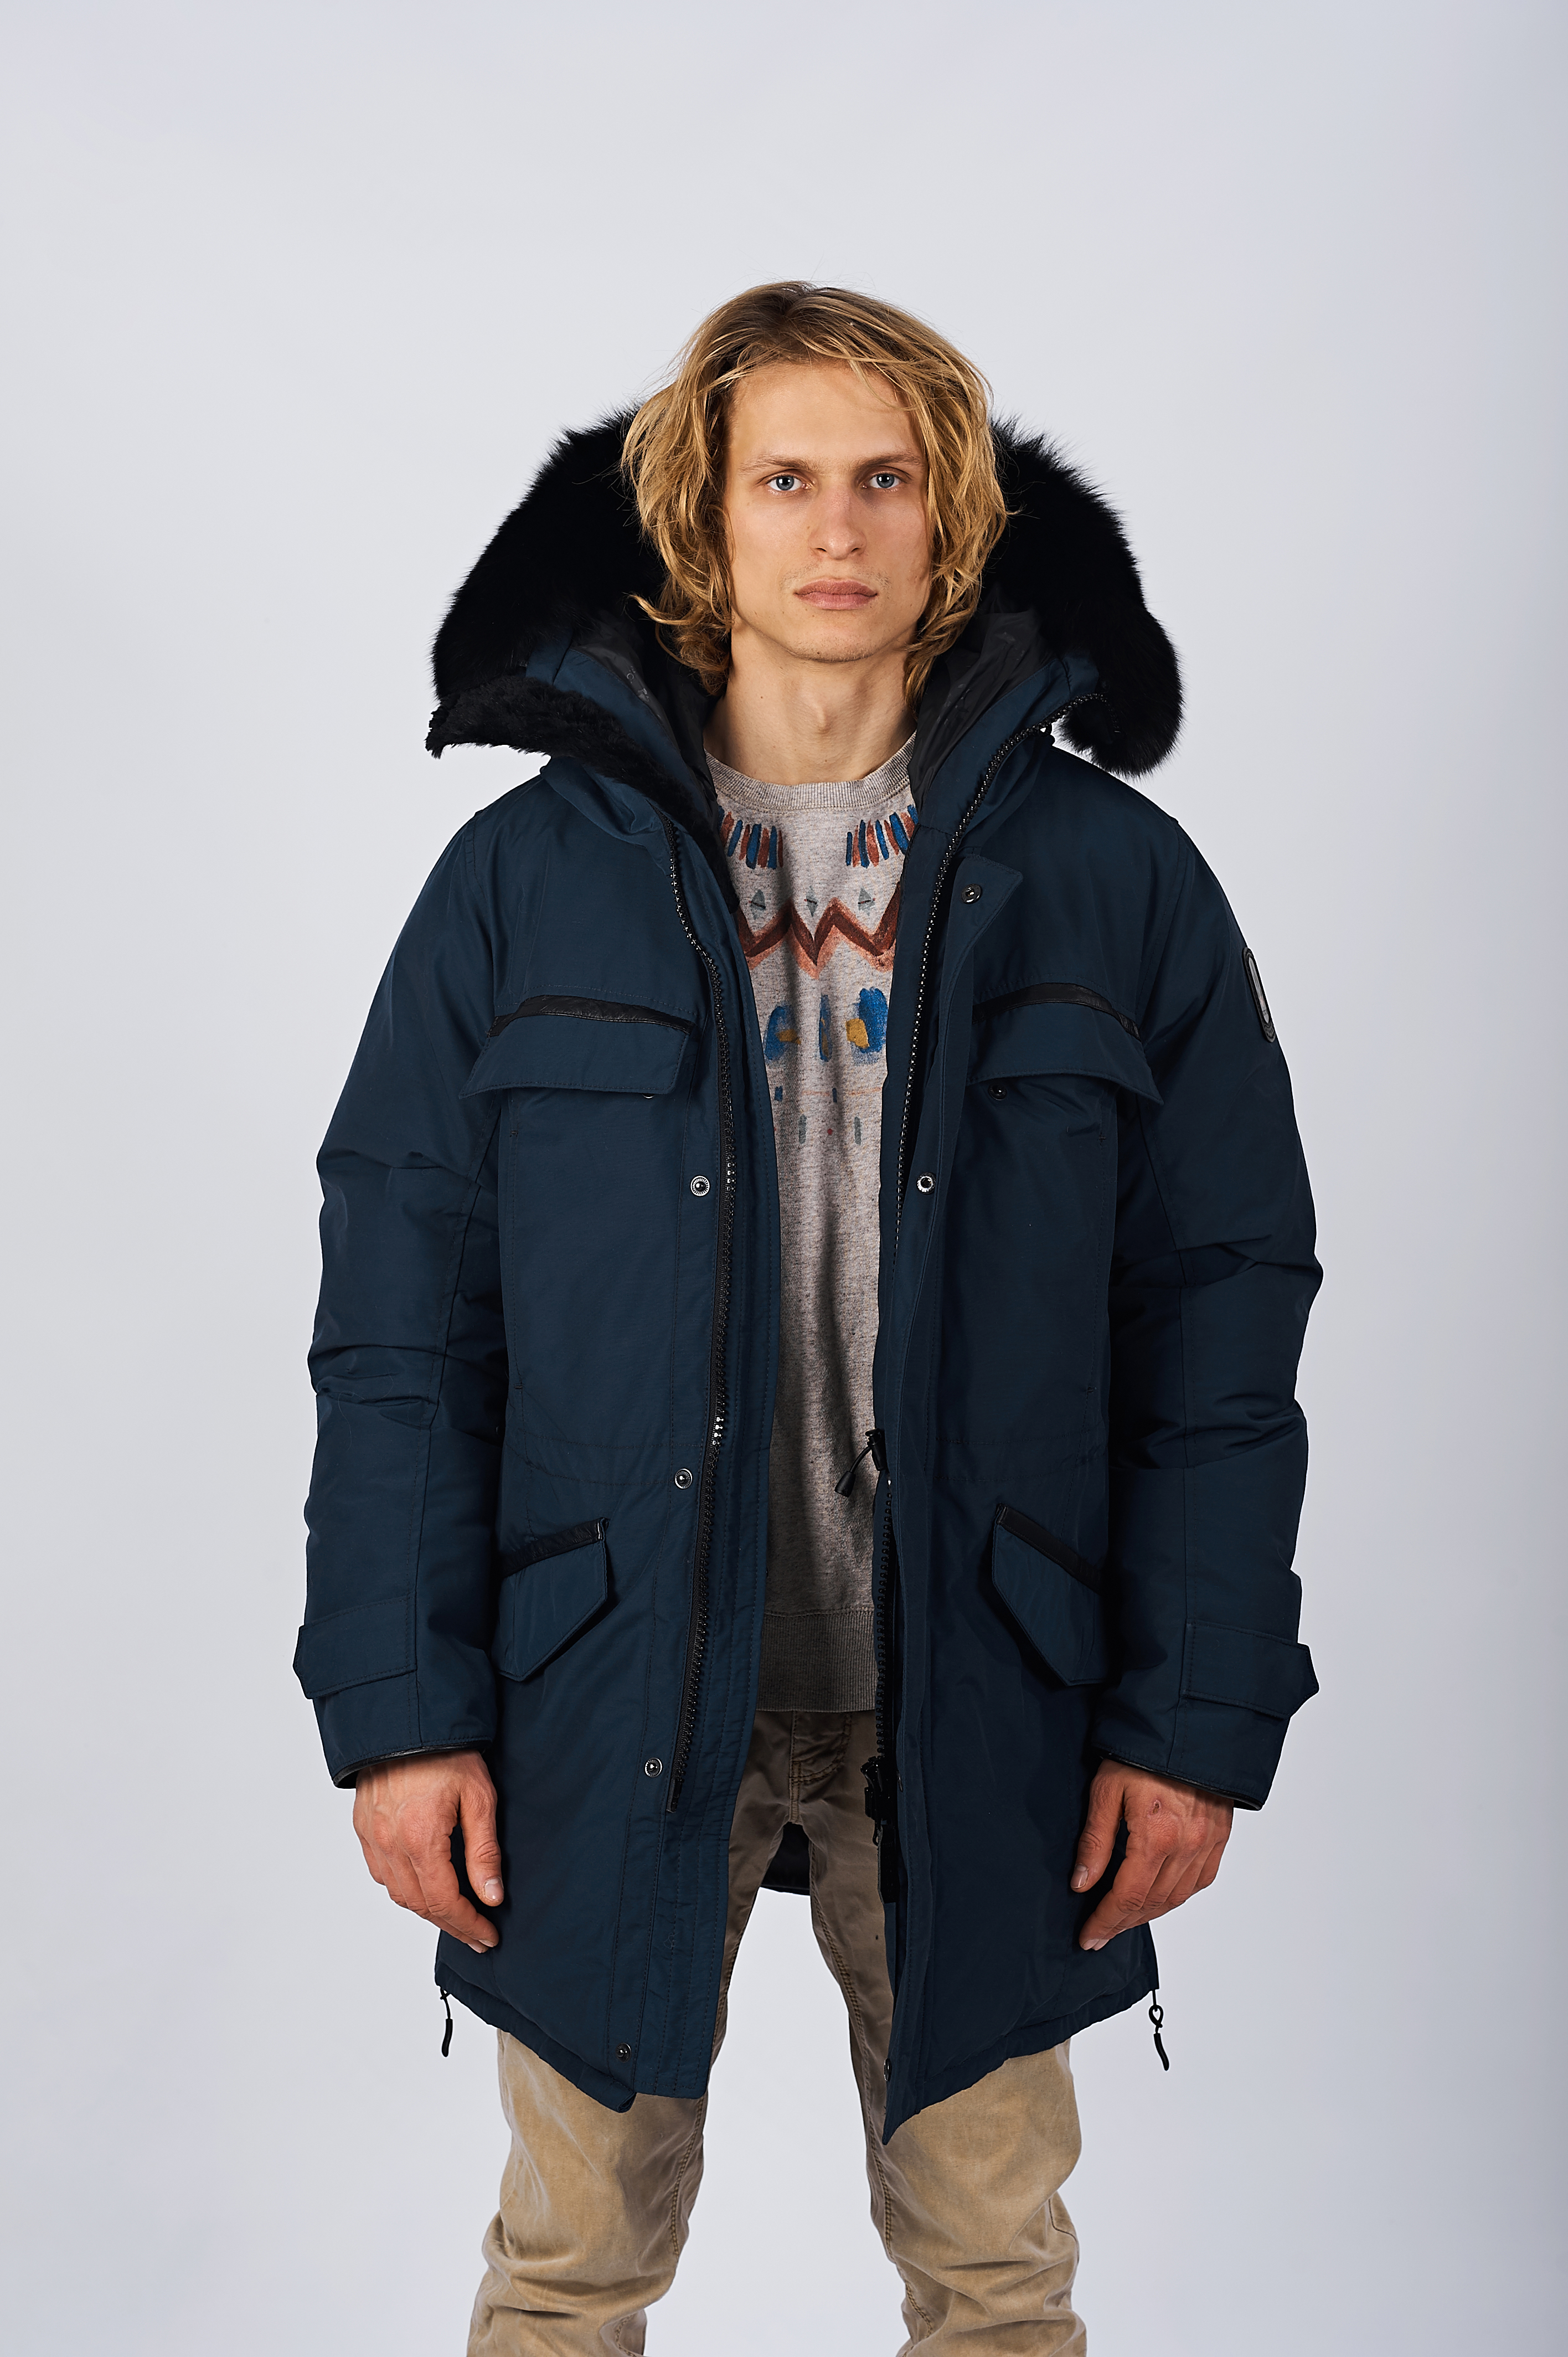 Men's Down Winter Jackets Perfect for Winter in Canada